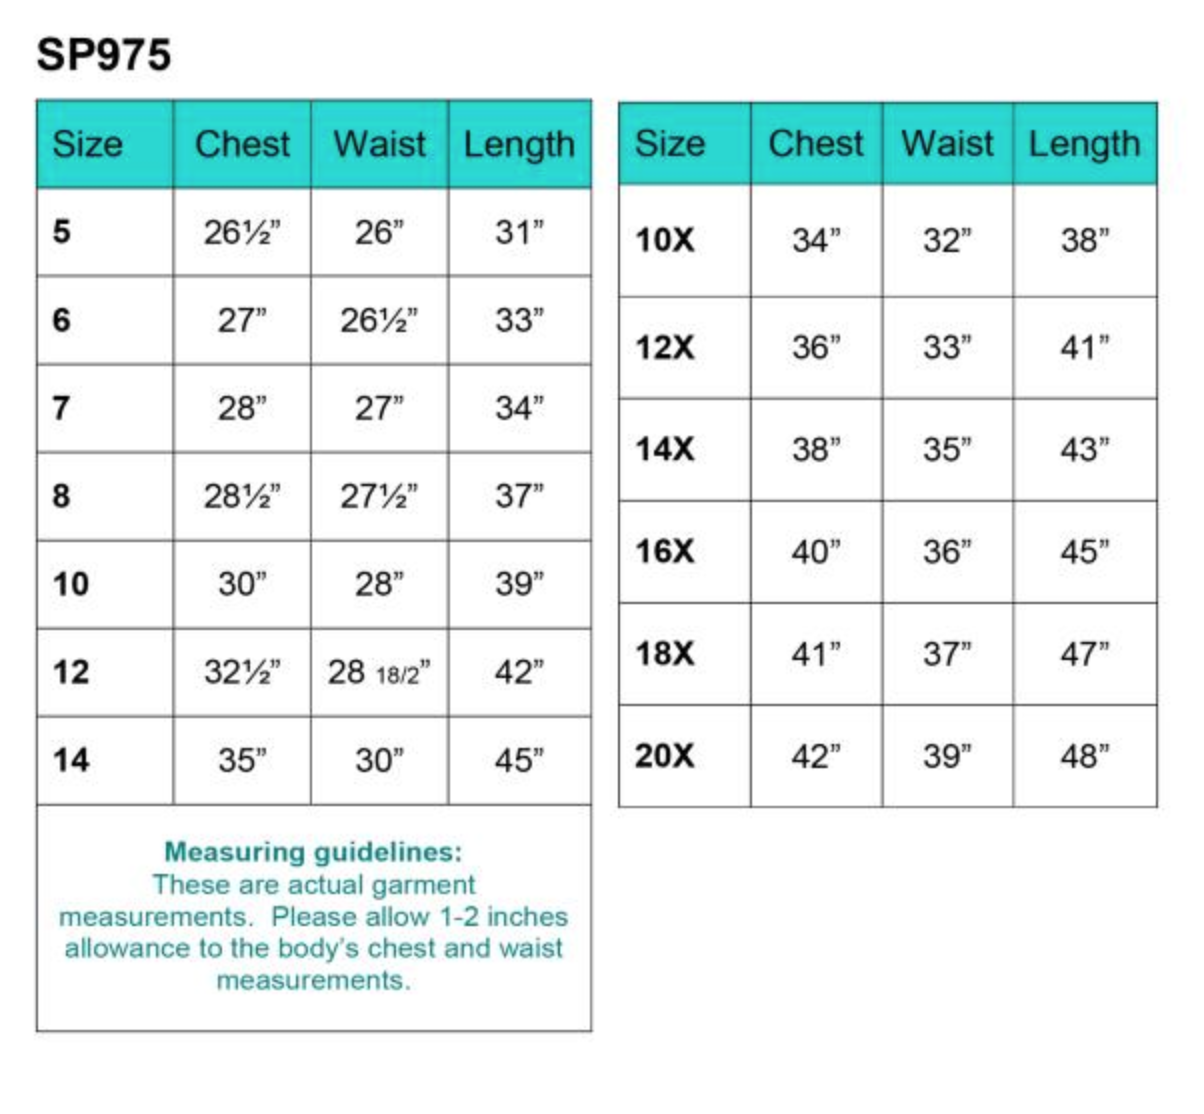 sizing-chart-sp975.png